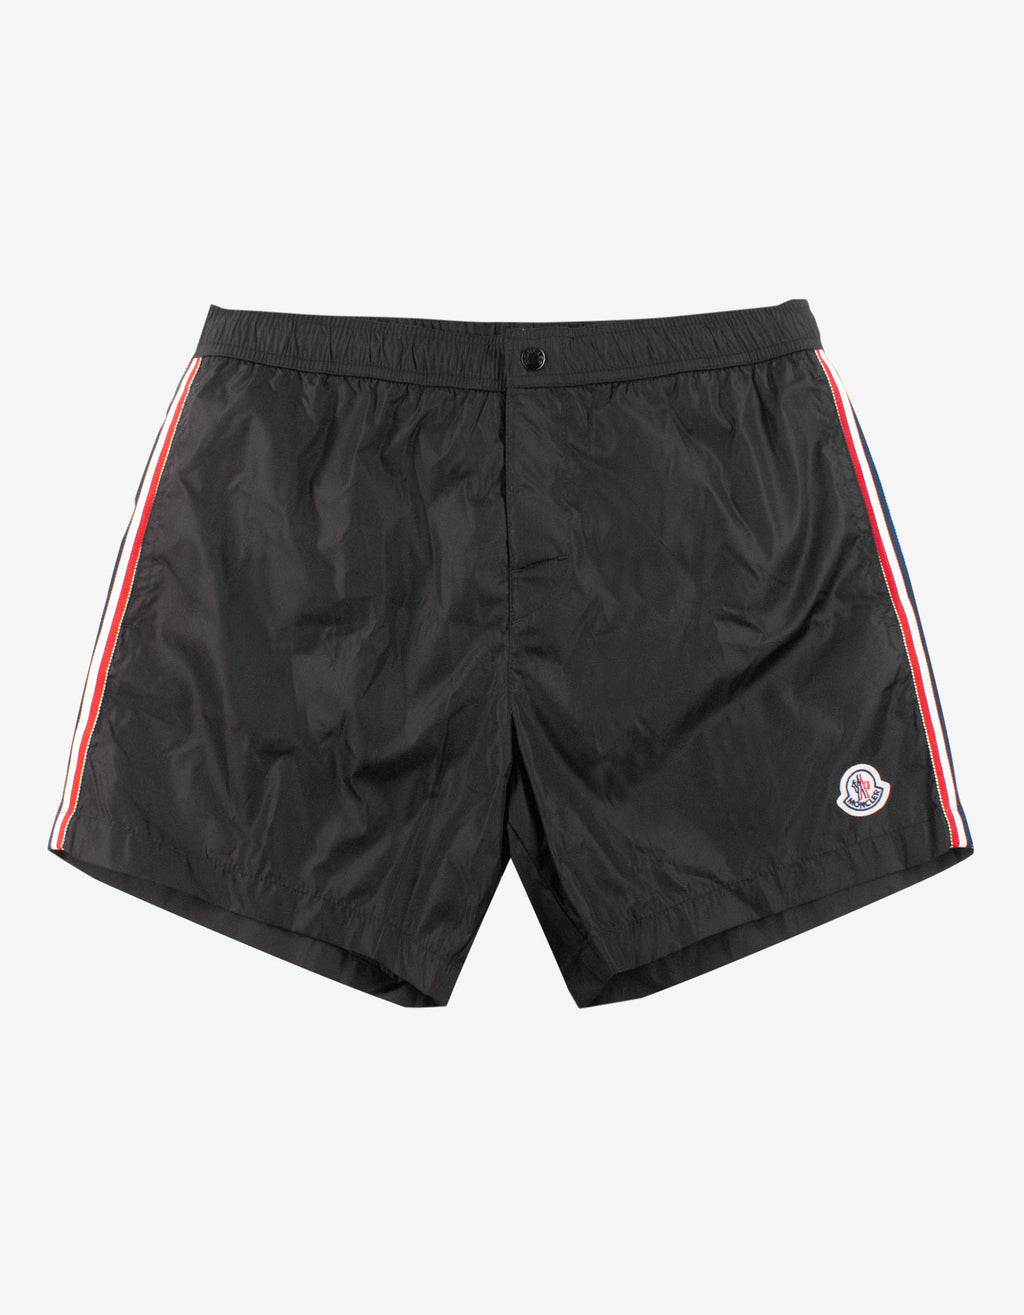 Black Tricolour Seam Swim Shorts